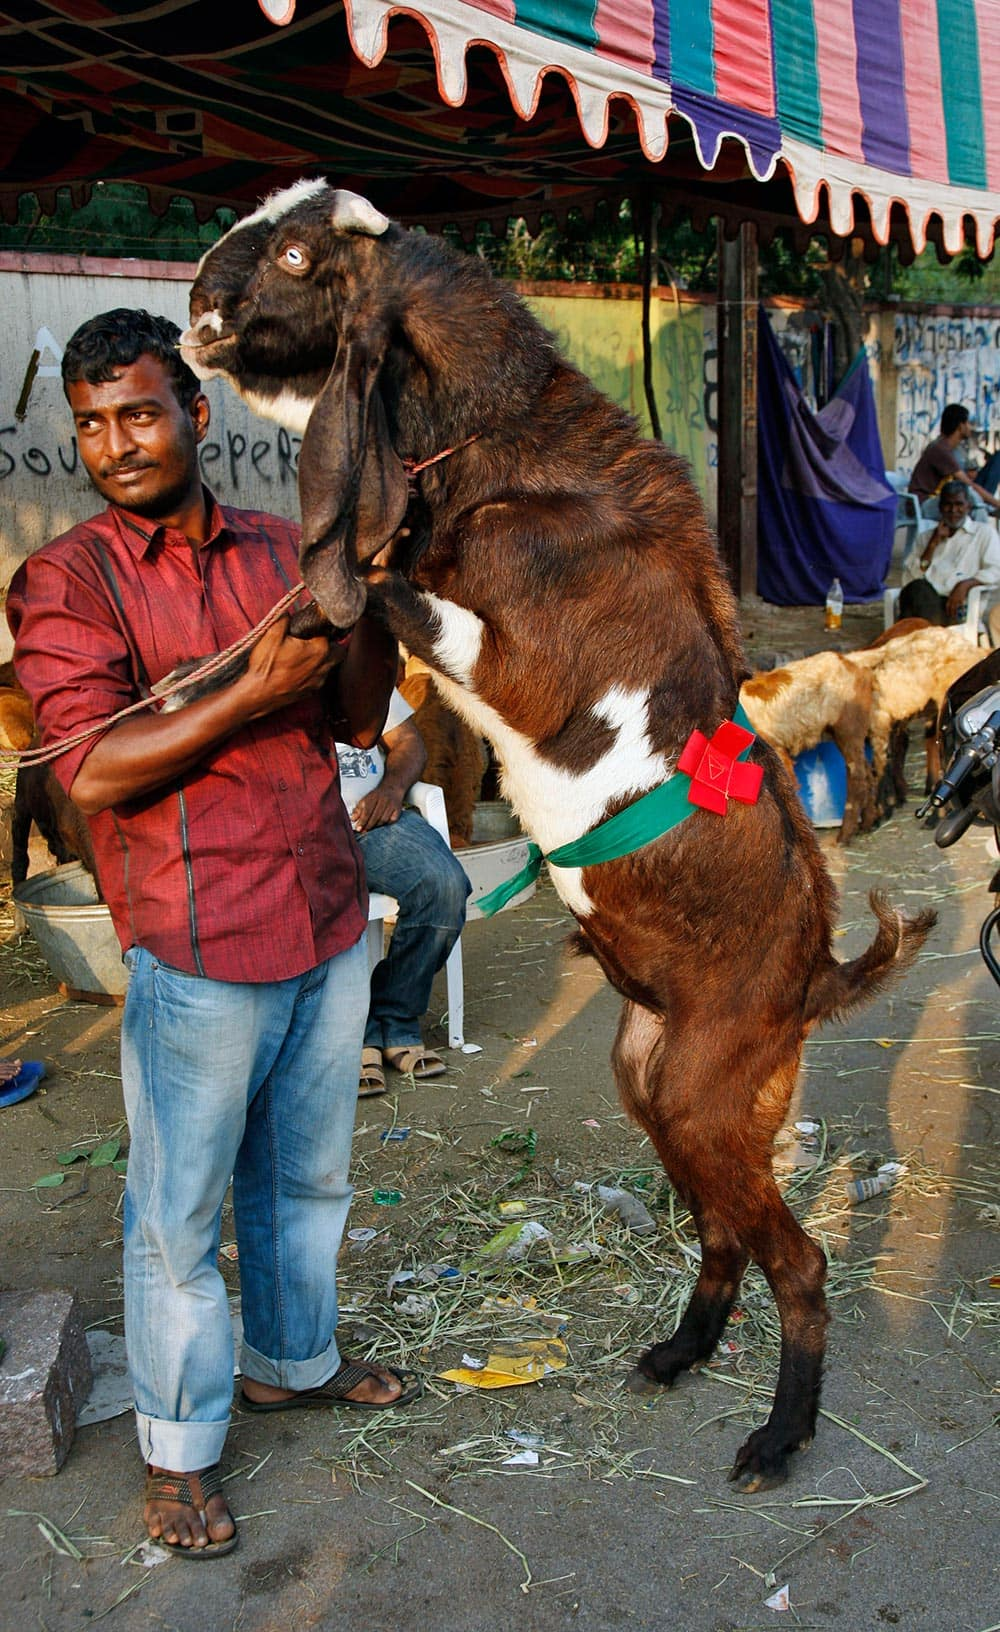 A man displays his goat at a marketplace ahead of the Muslim festival of Eid al-Adha in Hyderabad.